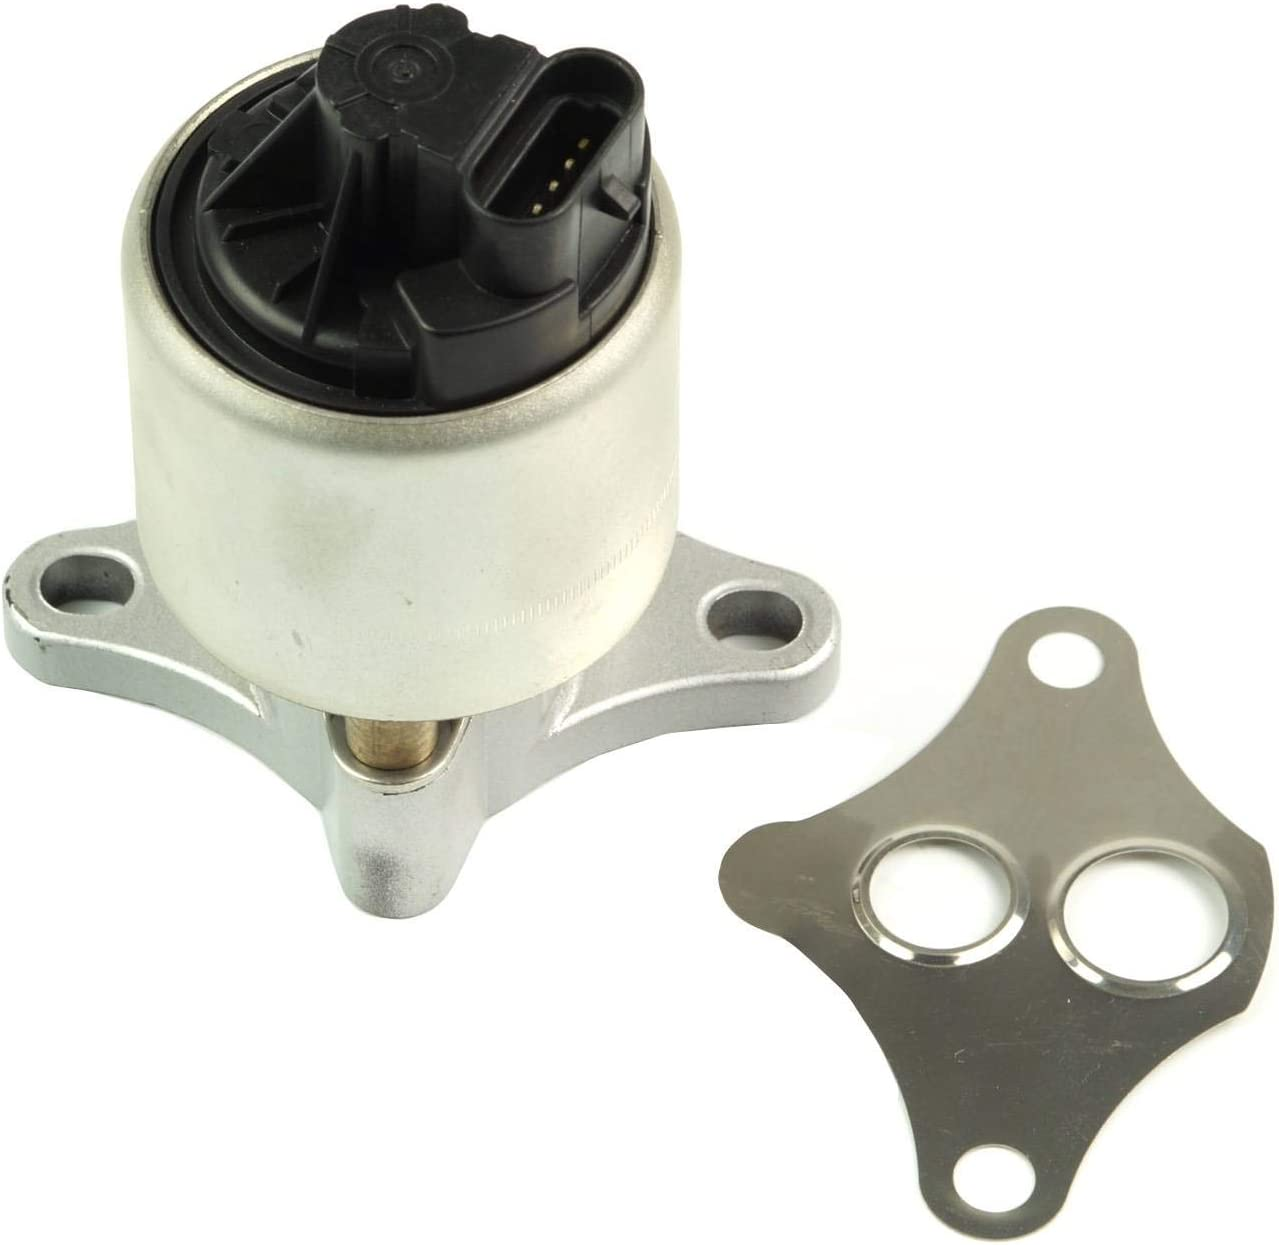 Niviora Time sale 1pc EGR Valve Exhaust with Recirculation Gas Compatible Finally popular brand